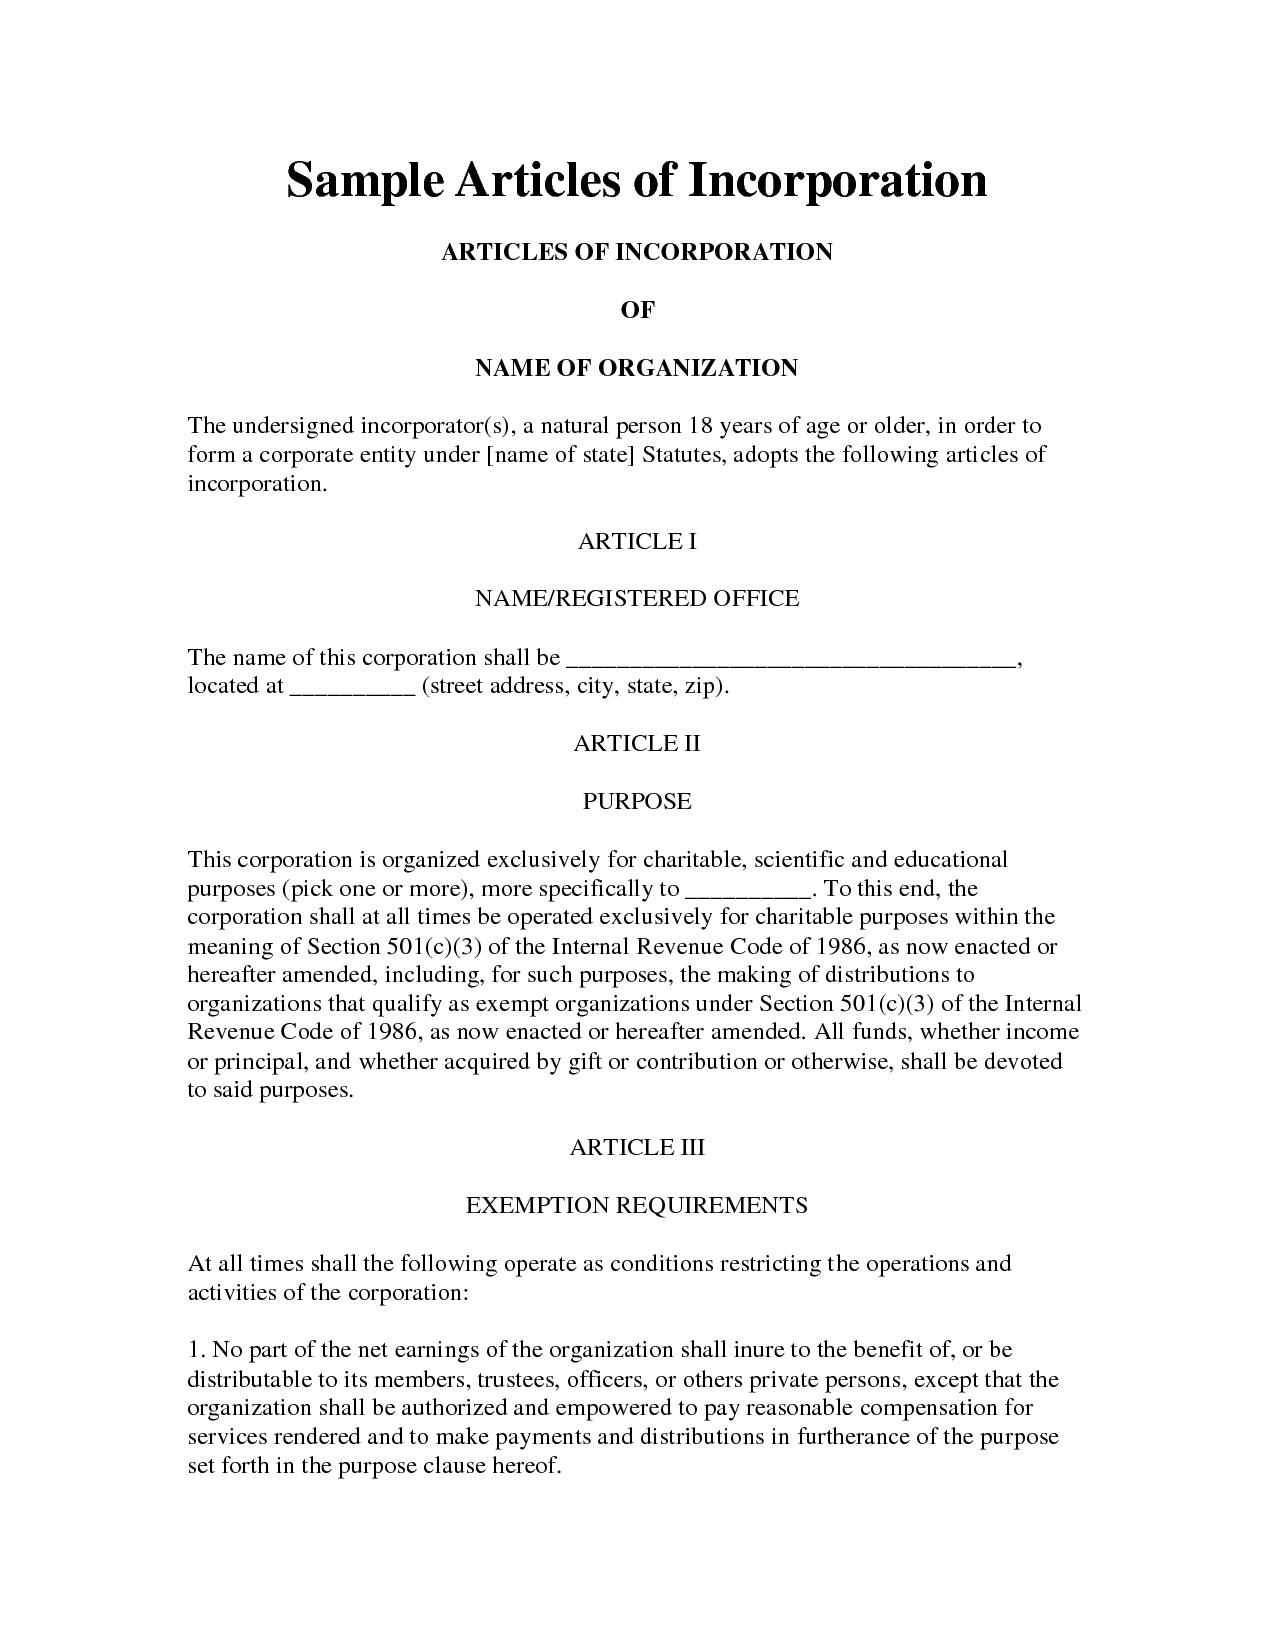 Company Articles Of Incorporation Template